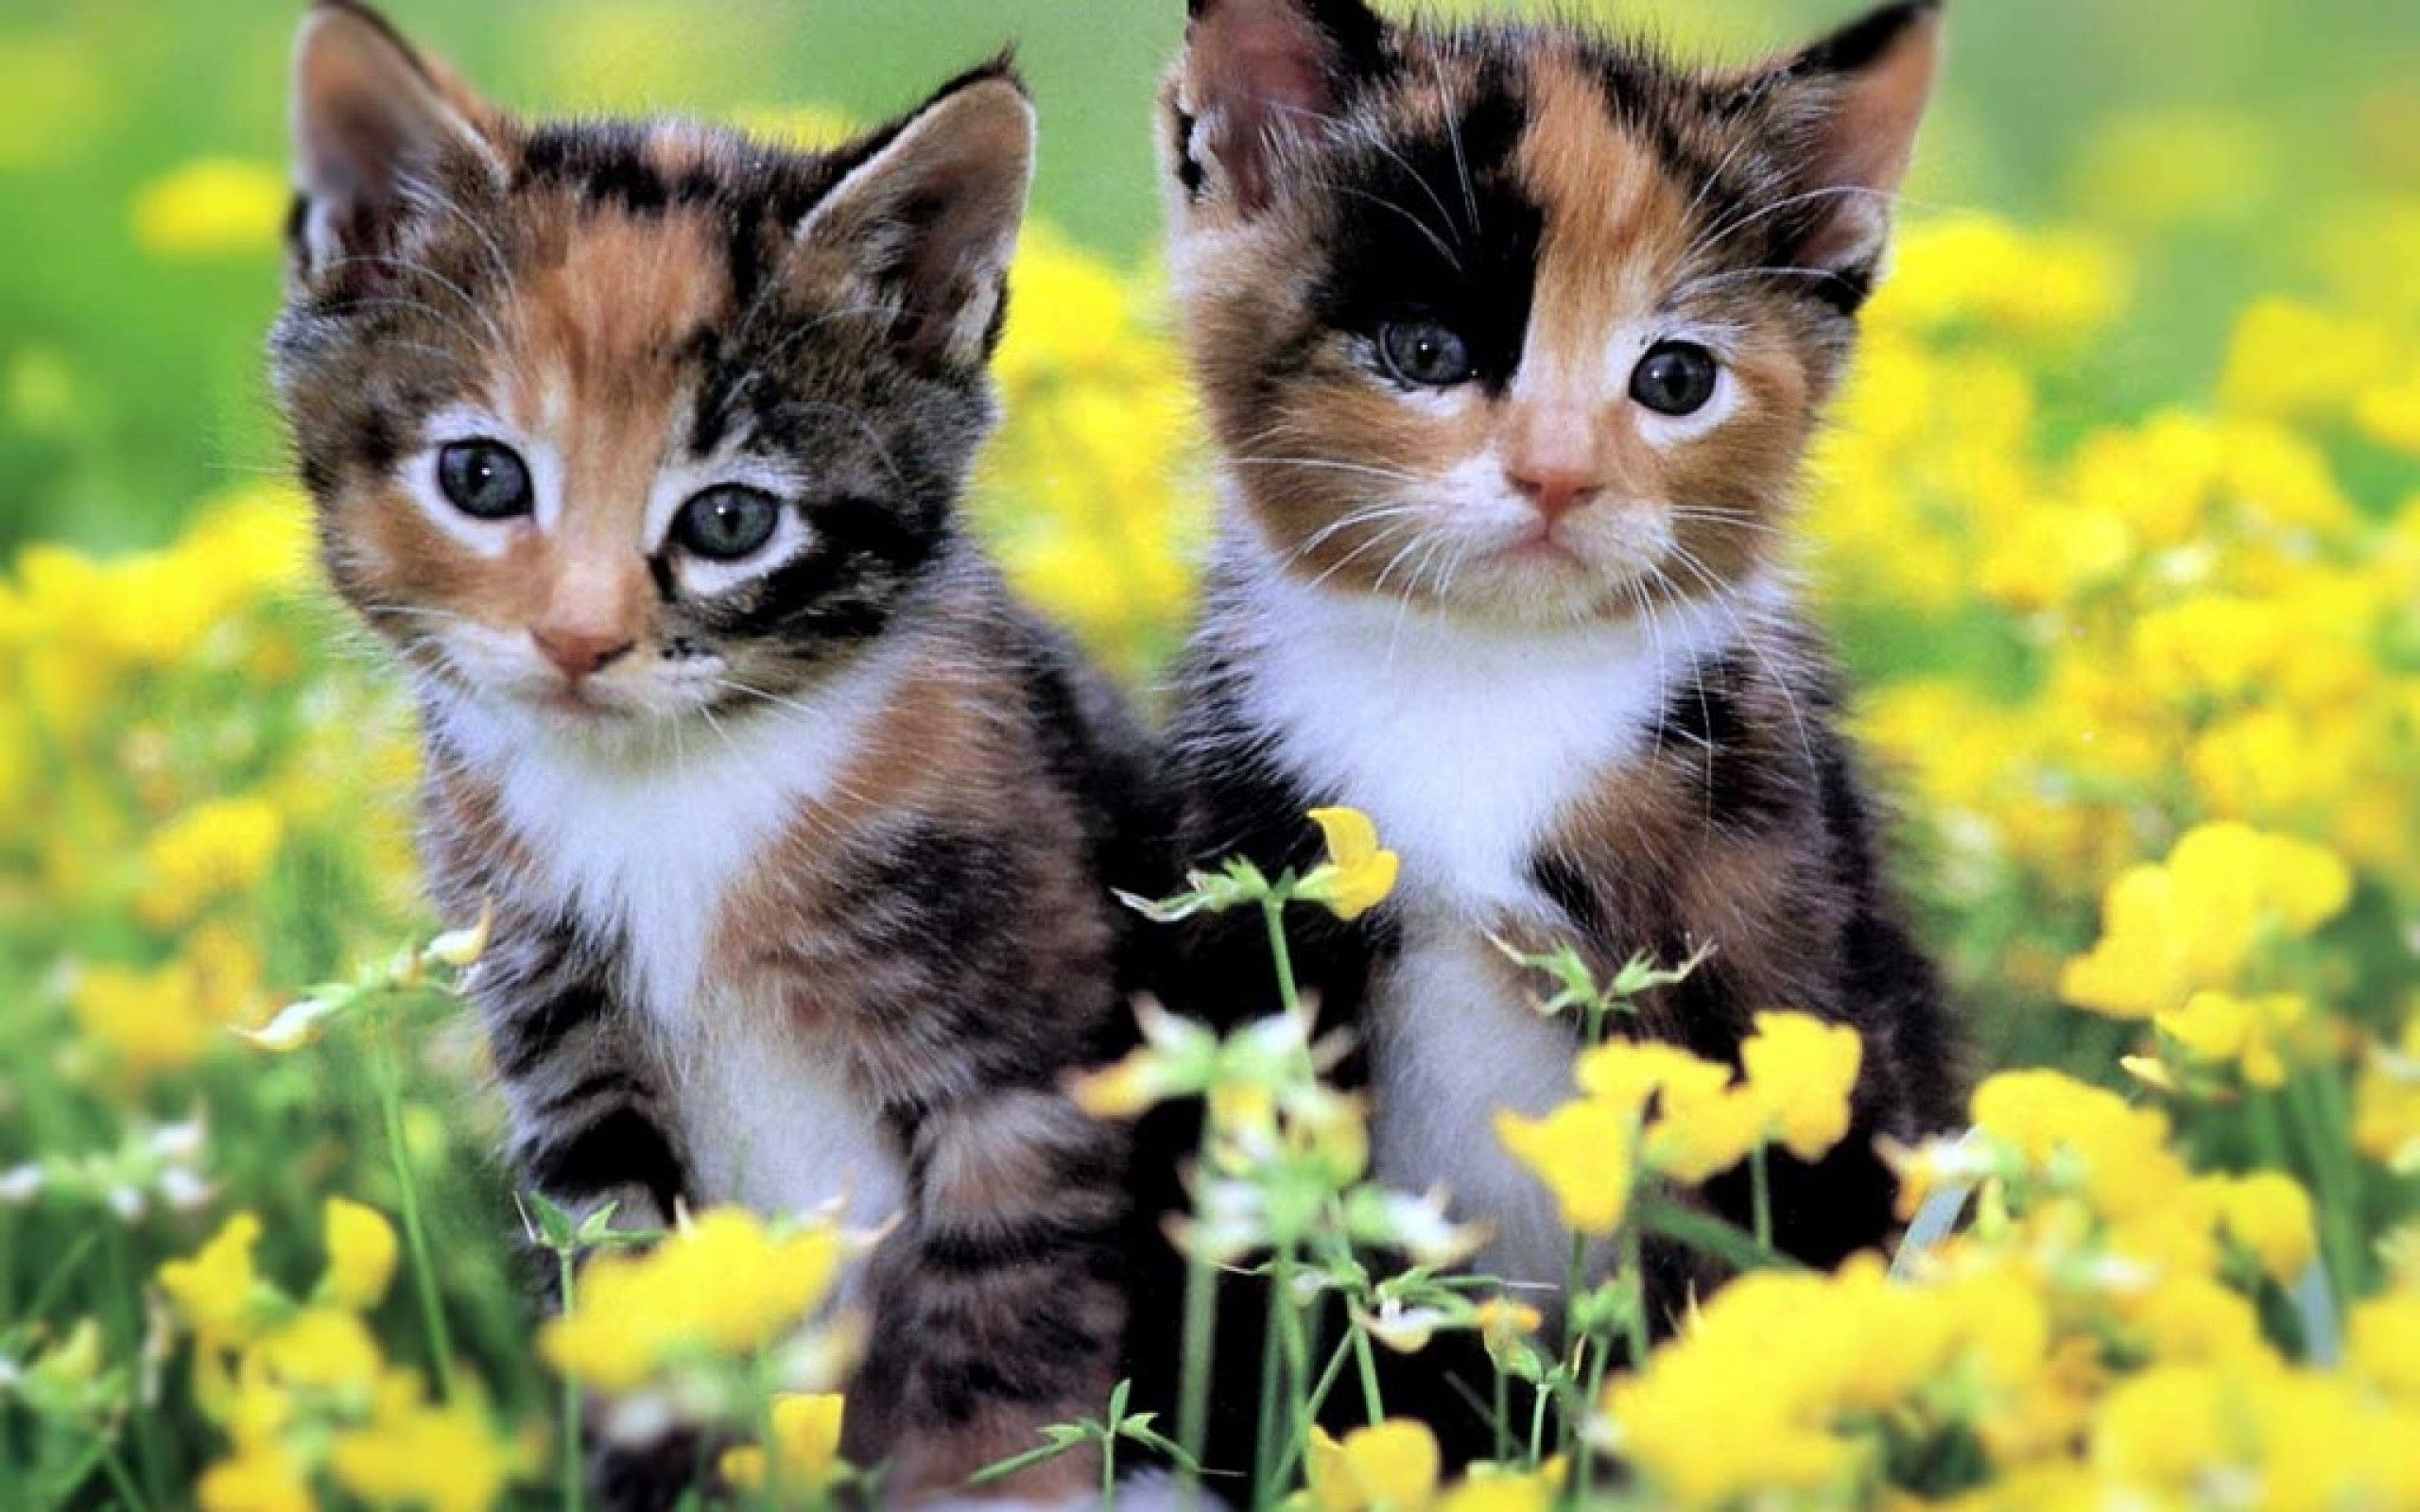 cute baby kittens wallpaper | Homepage » Cat » two cute kittens wallpaper